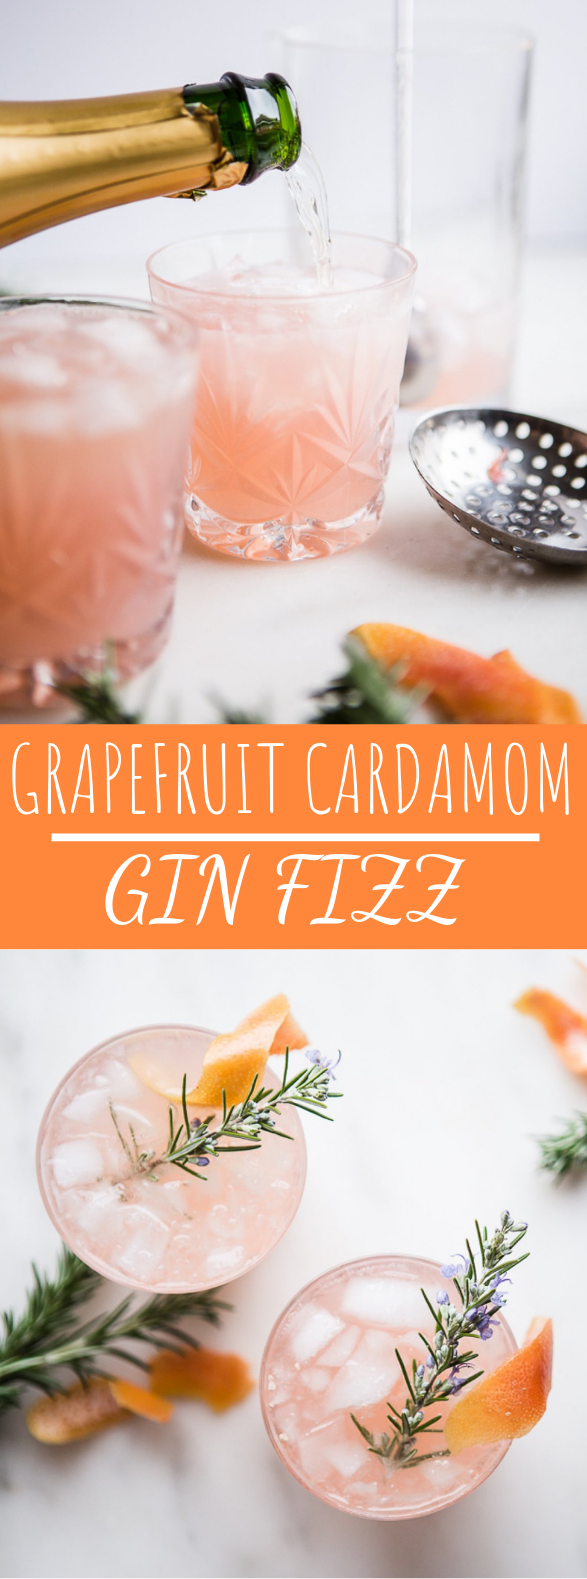 Grapefruit Cardamom Gin Fizz #cocktails #partydrinks